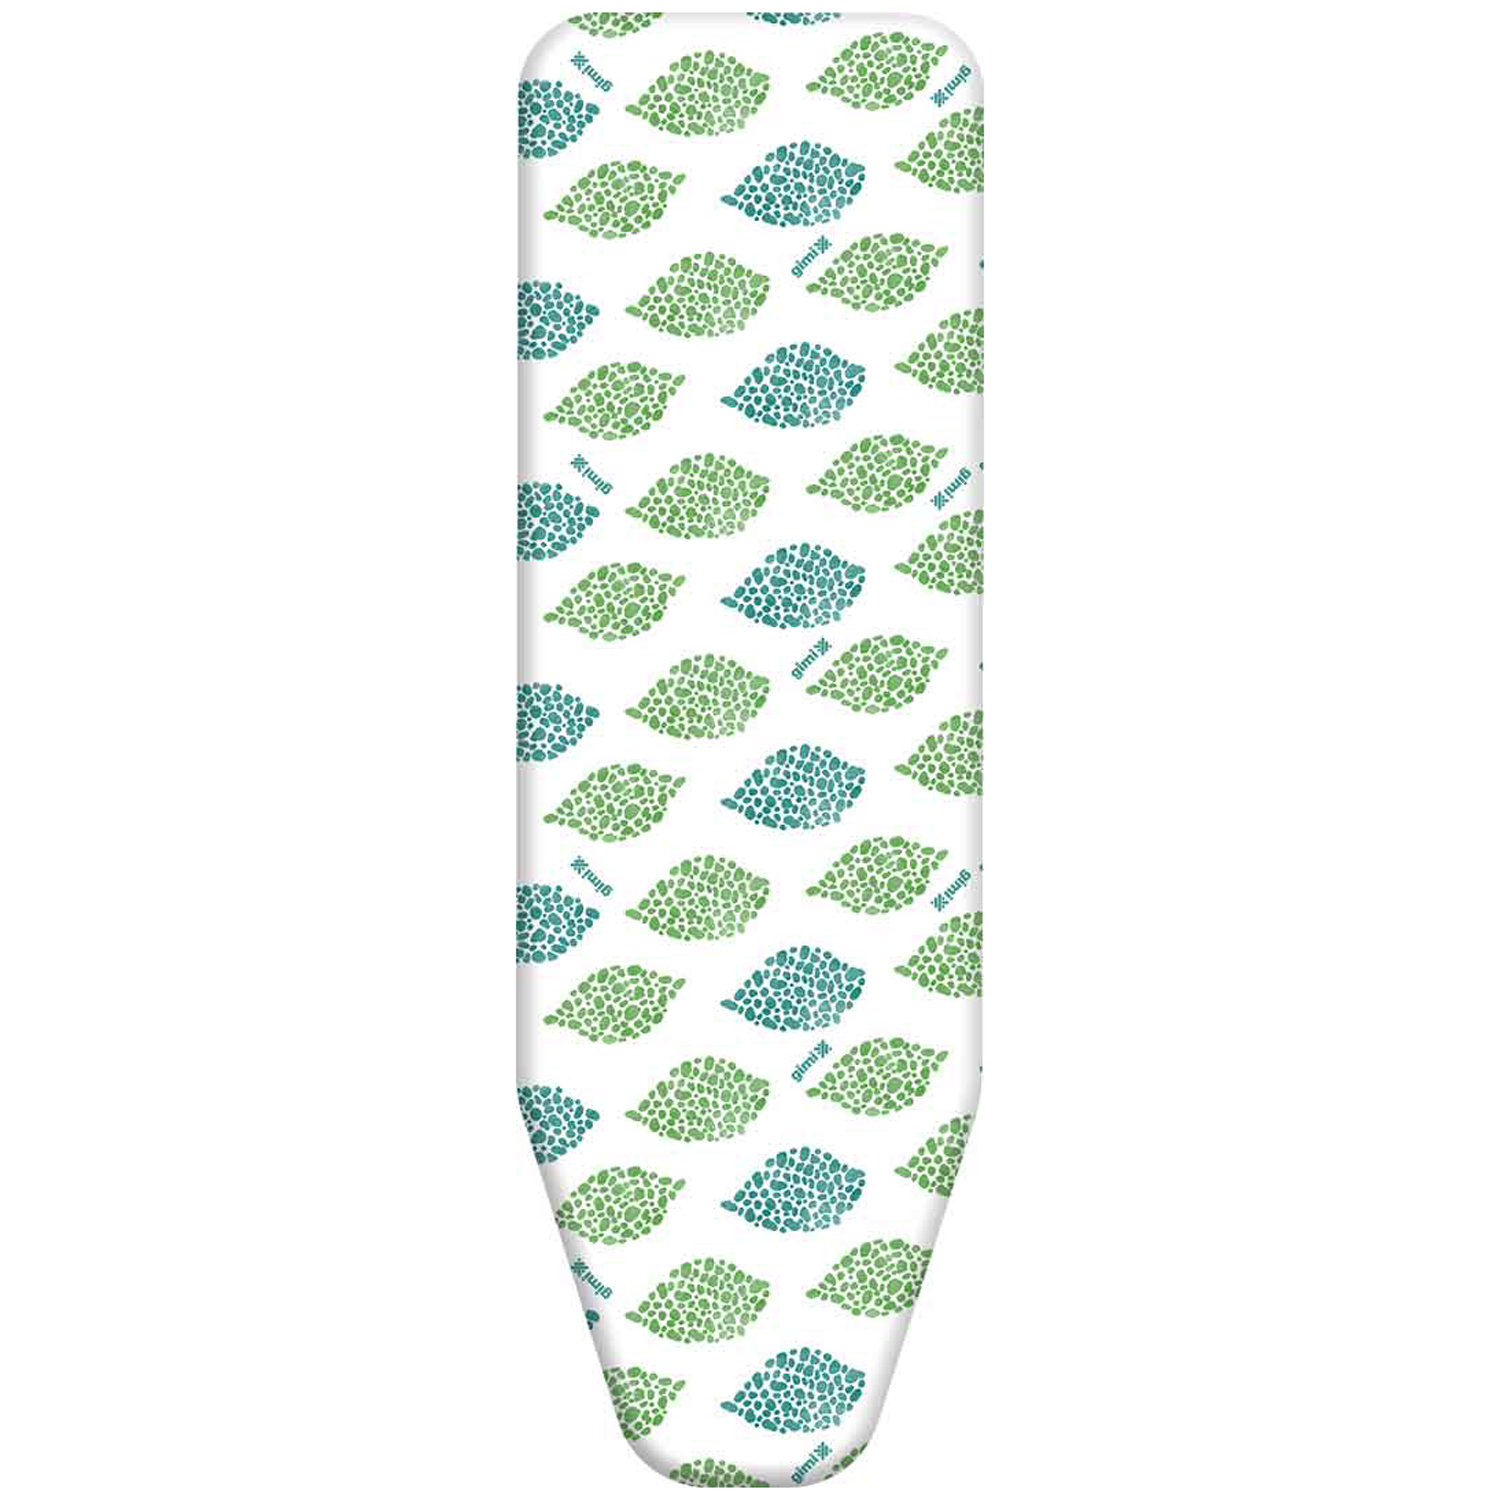 Ironing Board Cover Large